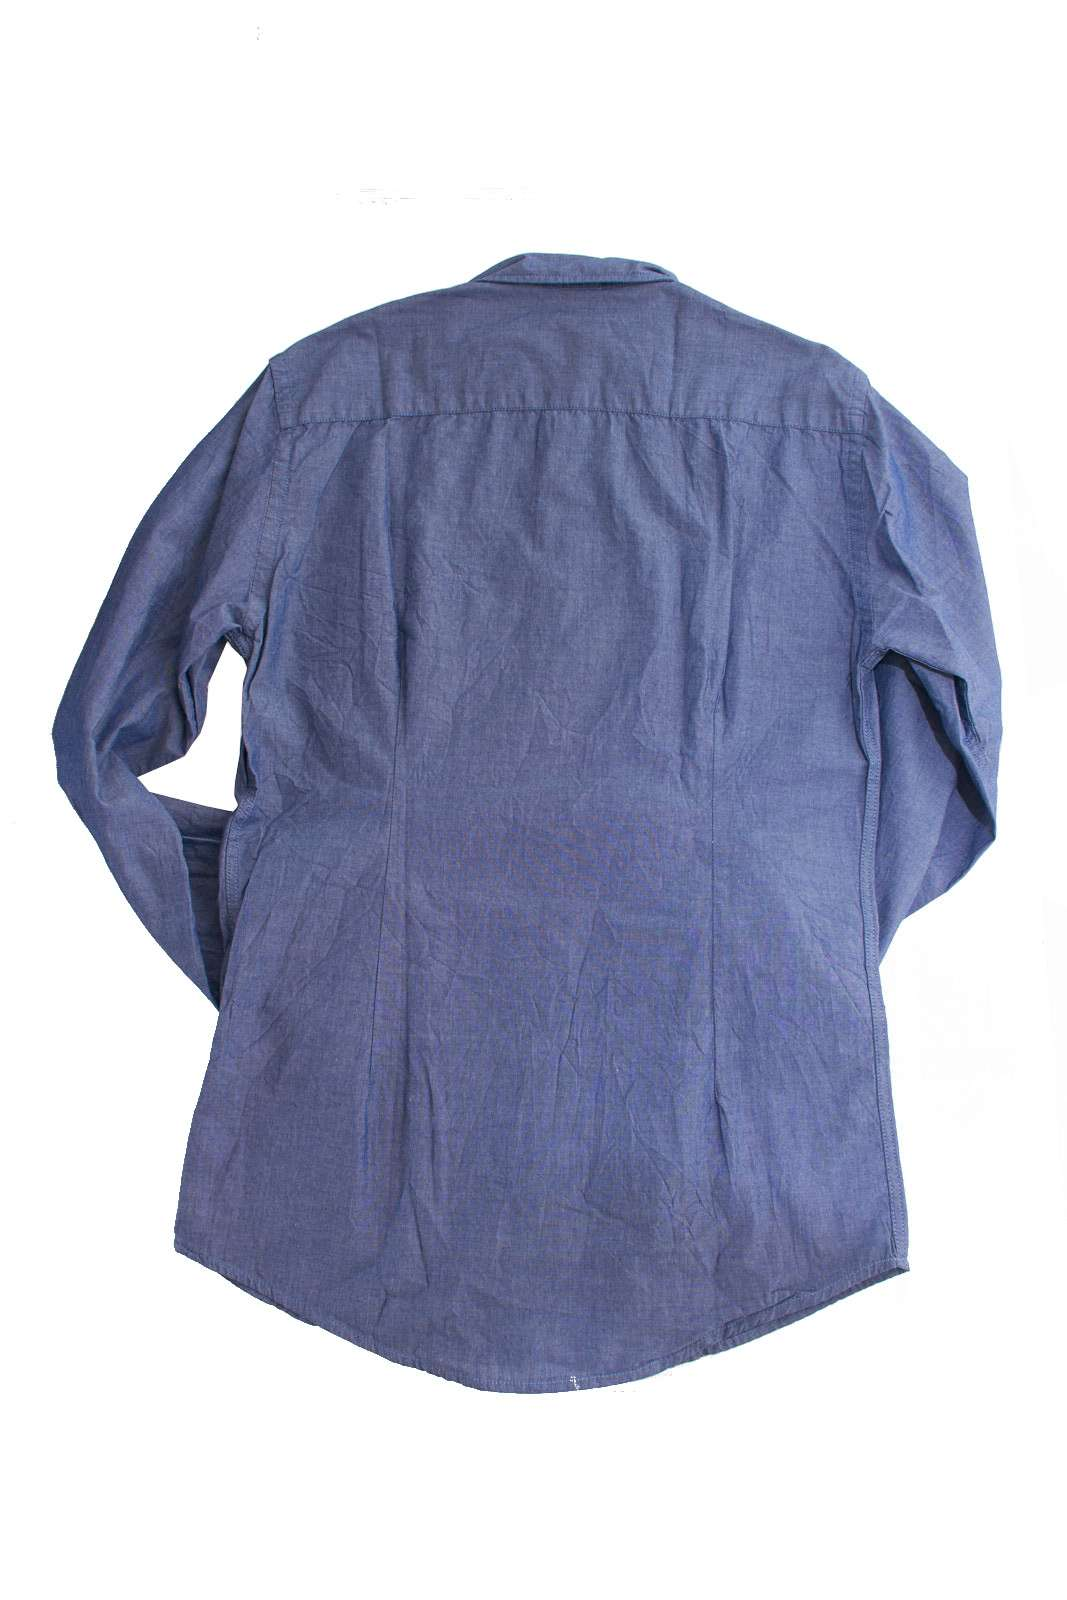 https://www.parmax.com/media/catalog/product/a/i/PE-outelt_parmax-camicia-bambino-Gas-GB2774-B.jpg